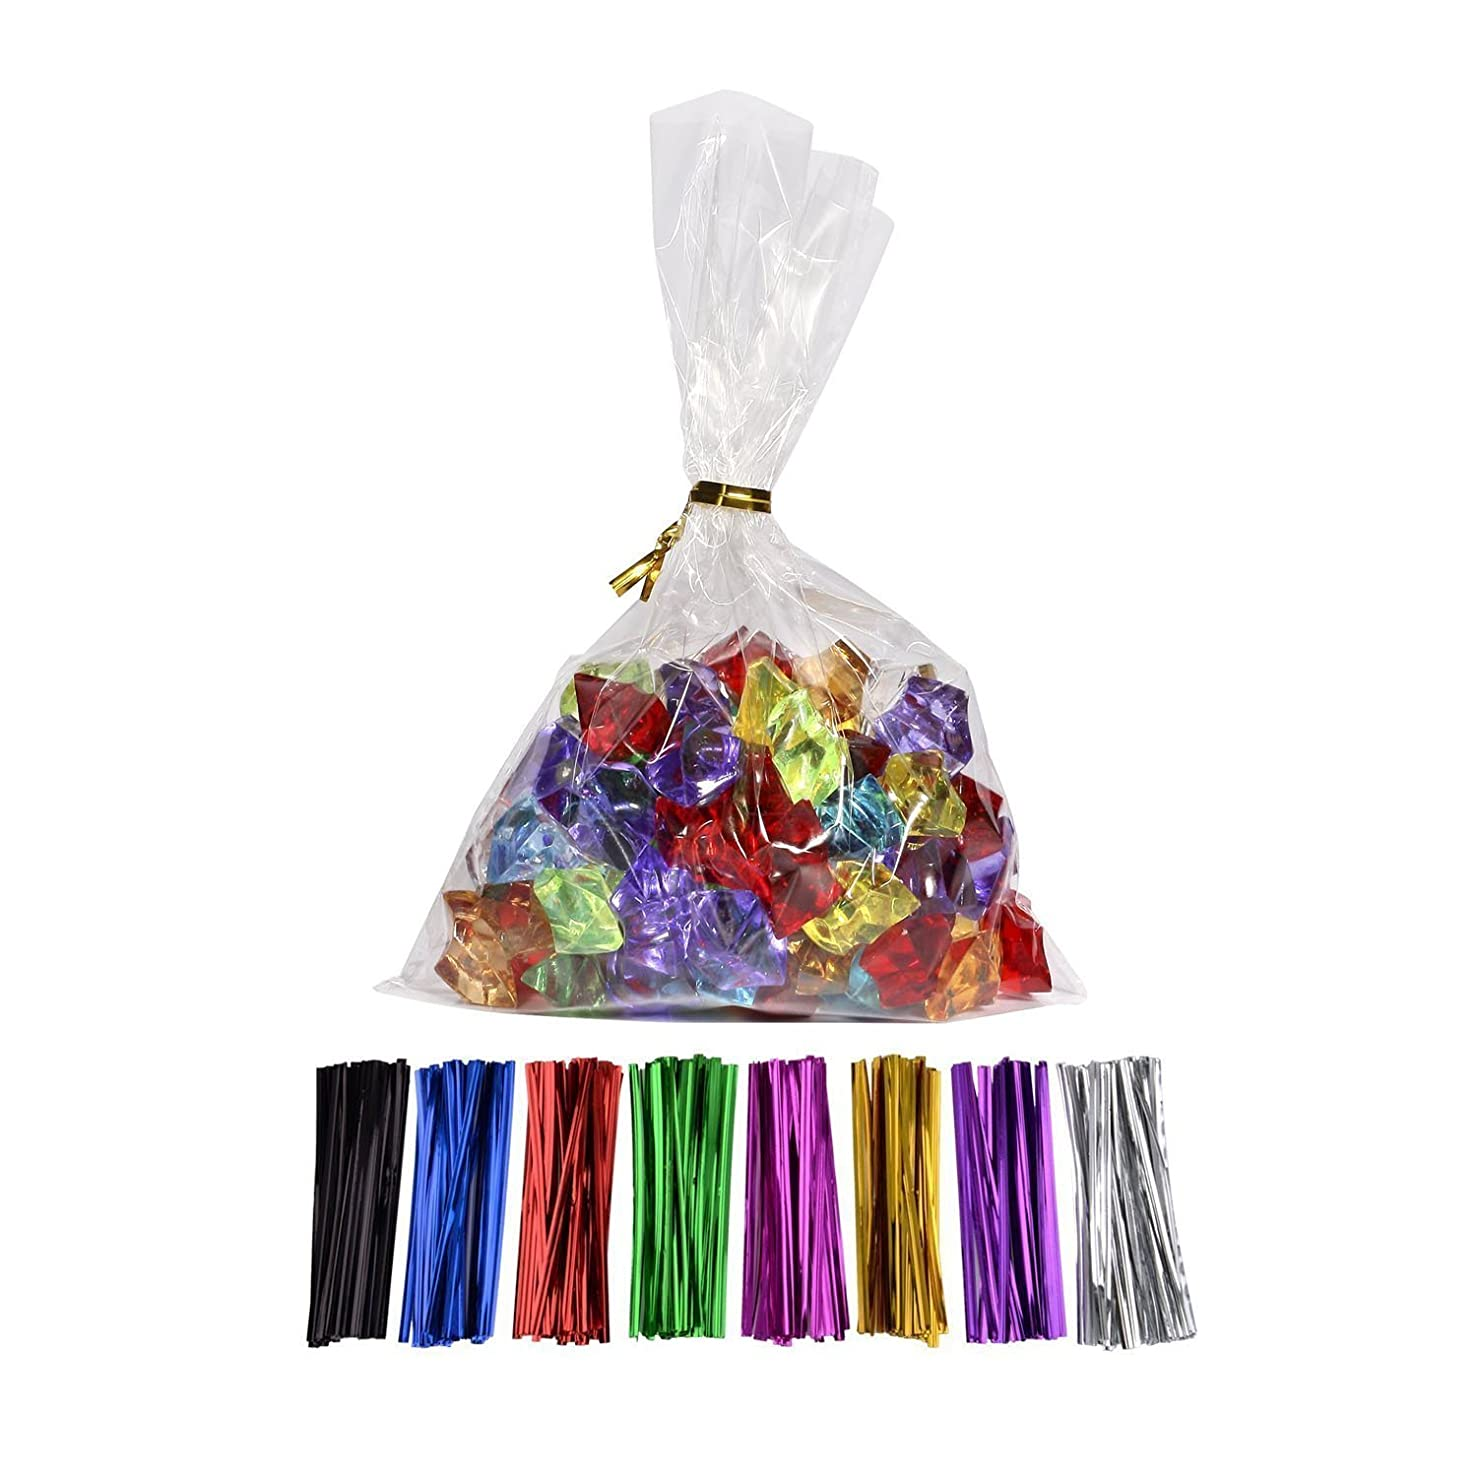 100 Pcs 10 in x 5 in(1.4mil.) Clear Flat Cello Cellophane Treat Bags Good for Bakery, Cookies, Candies,Dessert with random color Twist Ties!